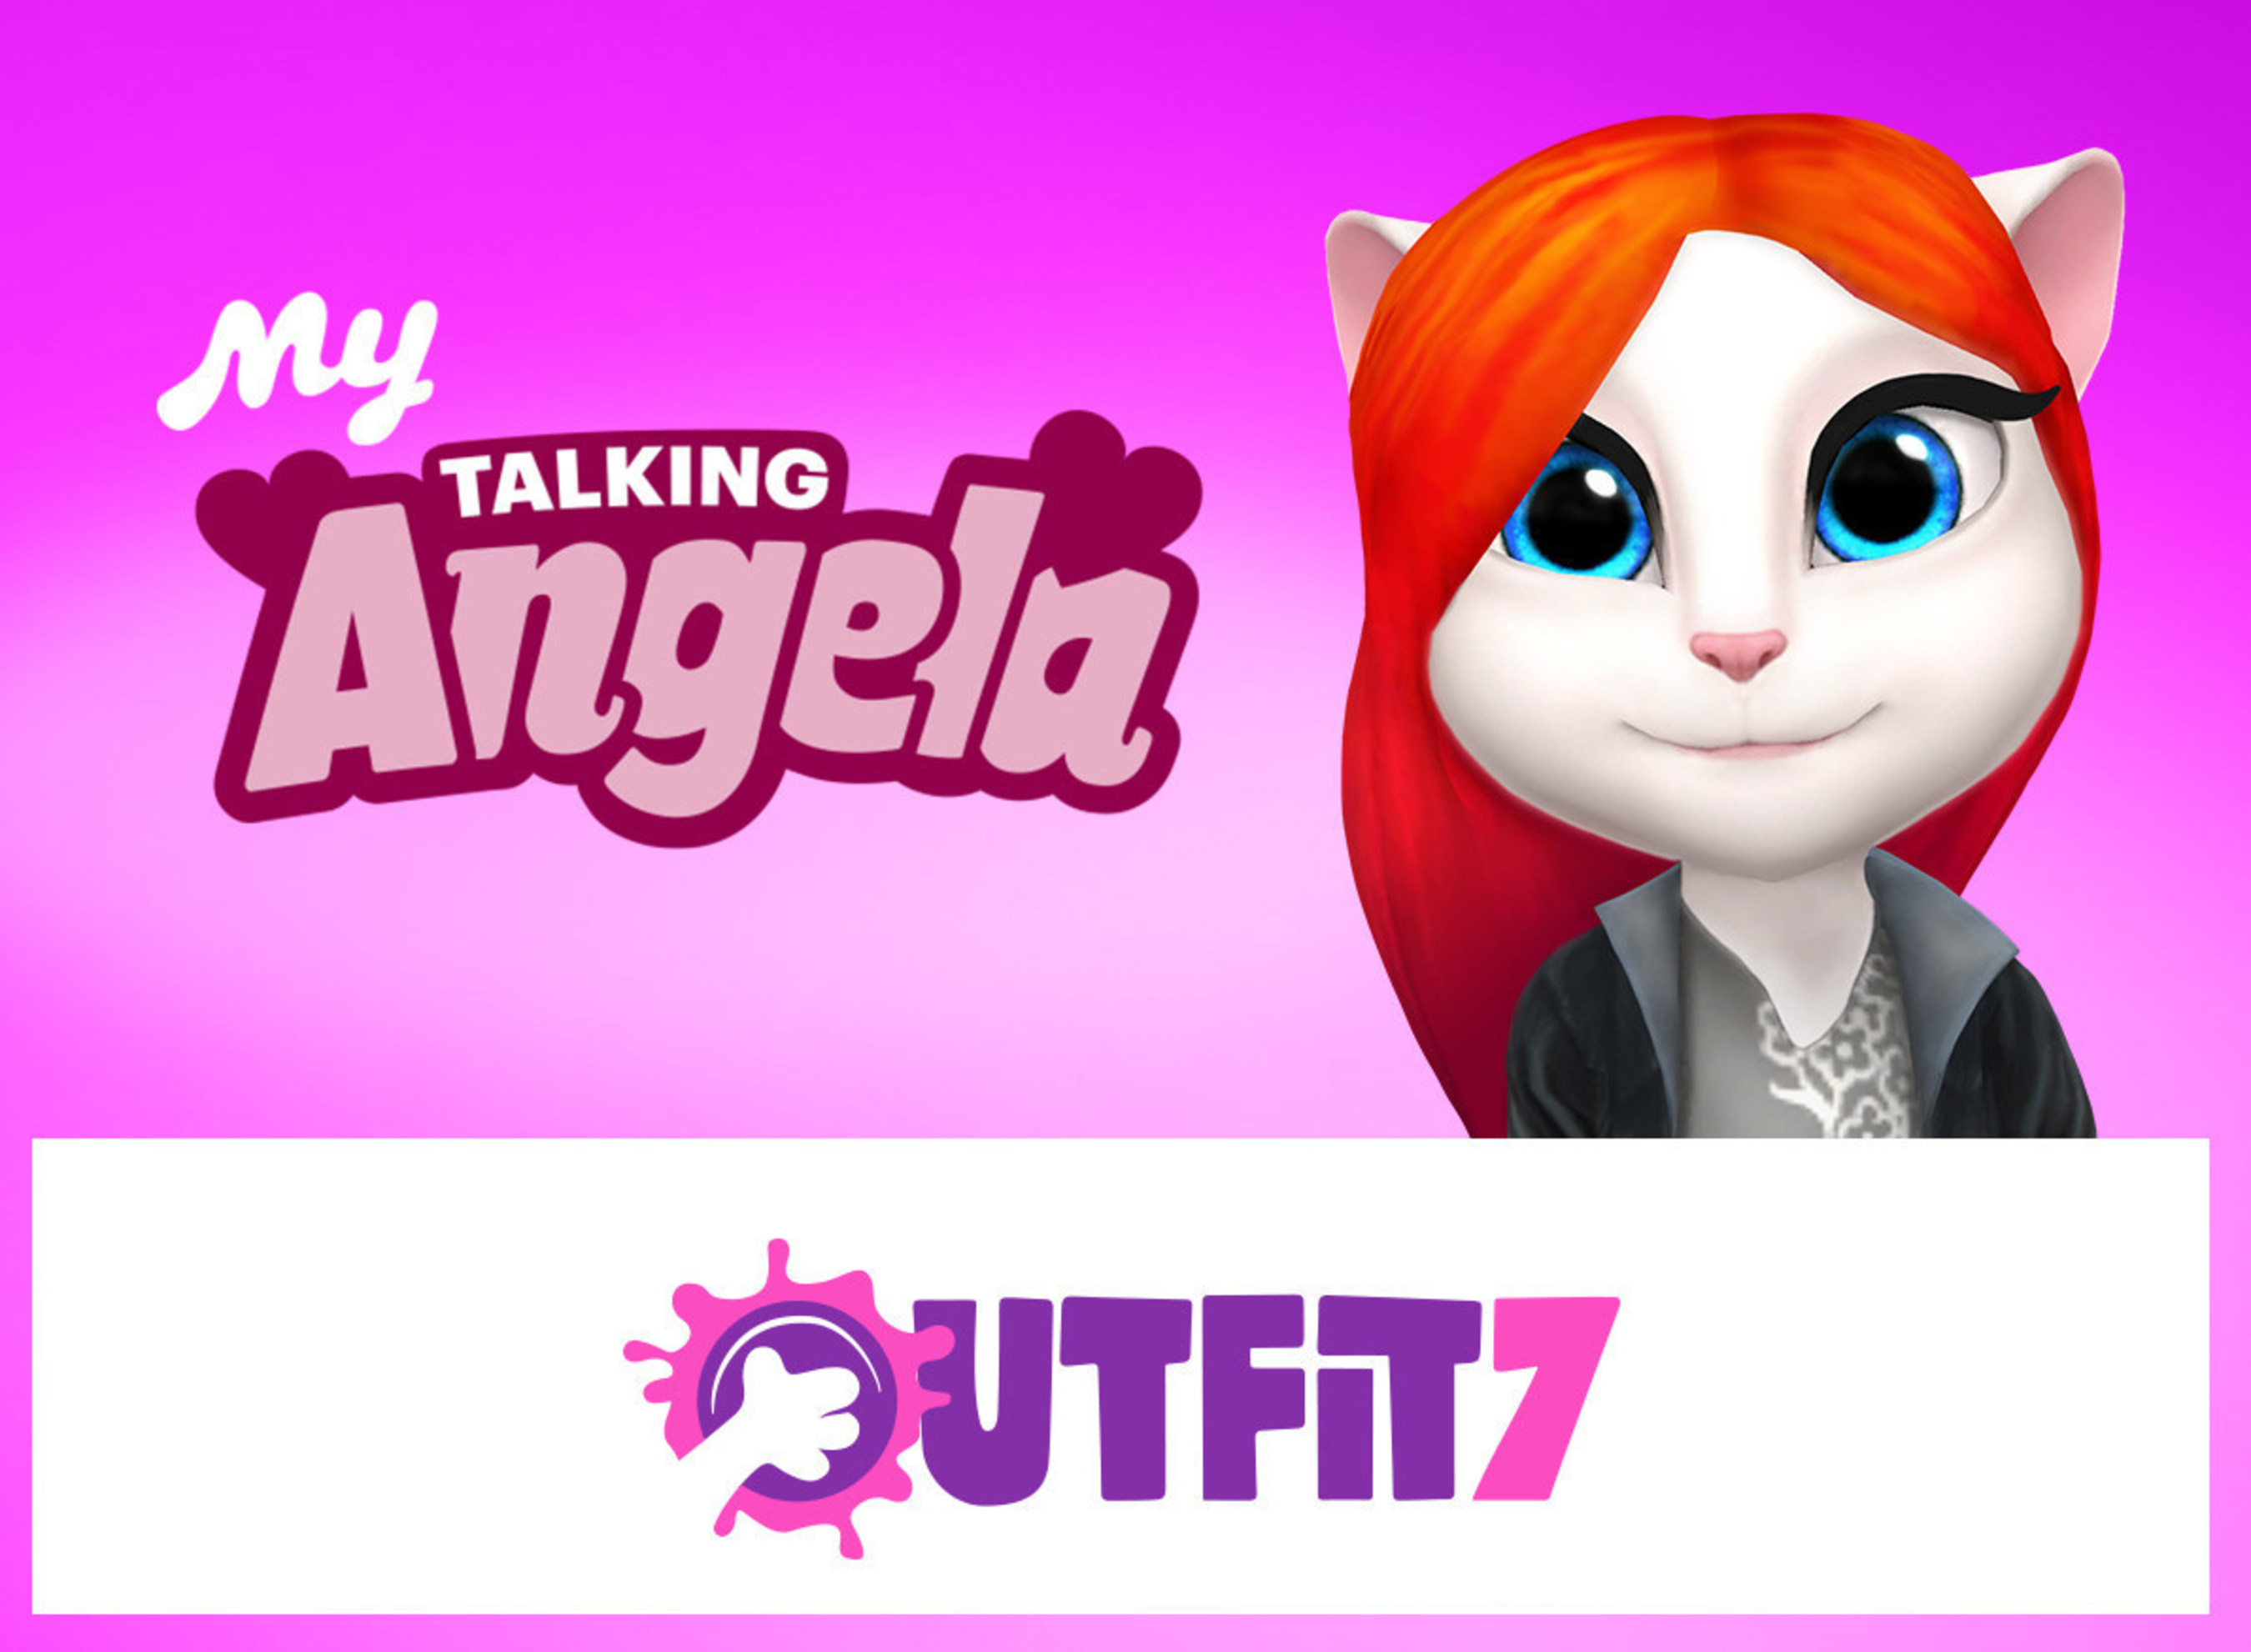 Outfit7's New App, My Talking Angela, Expected To 'Cat-Apult